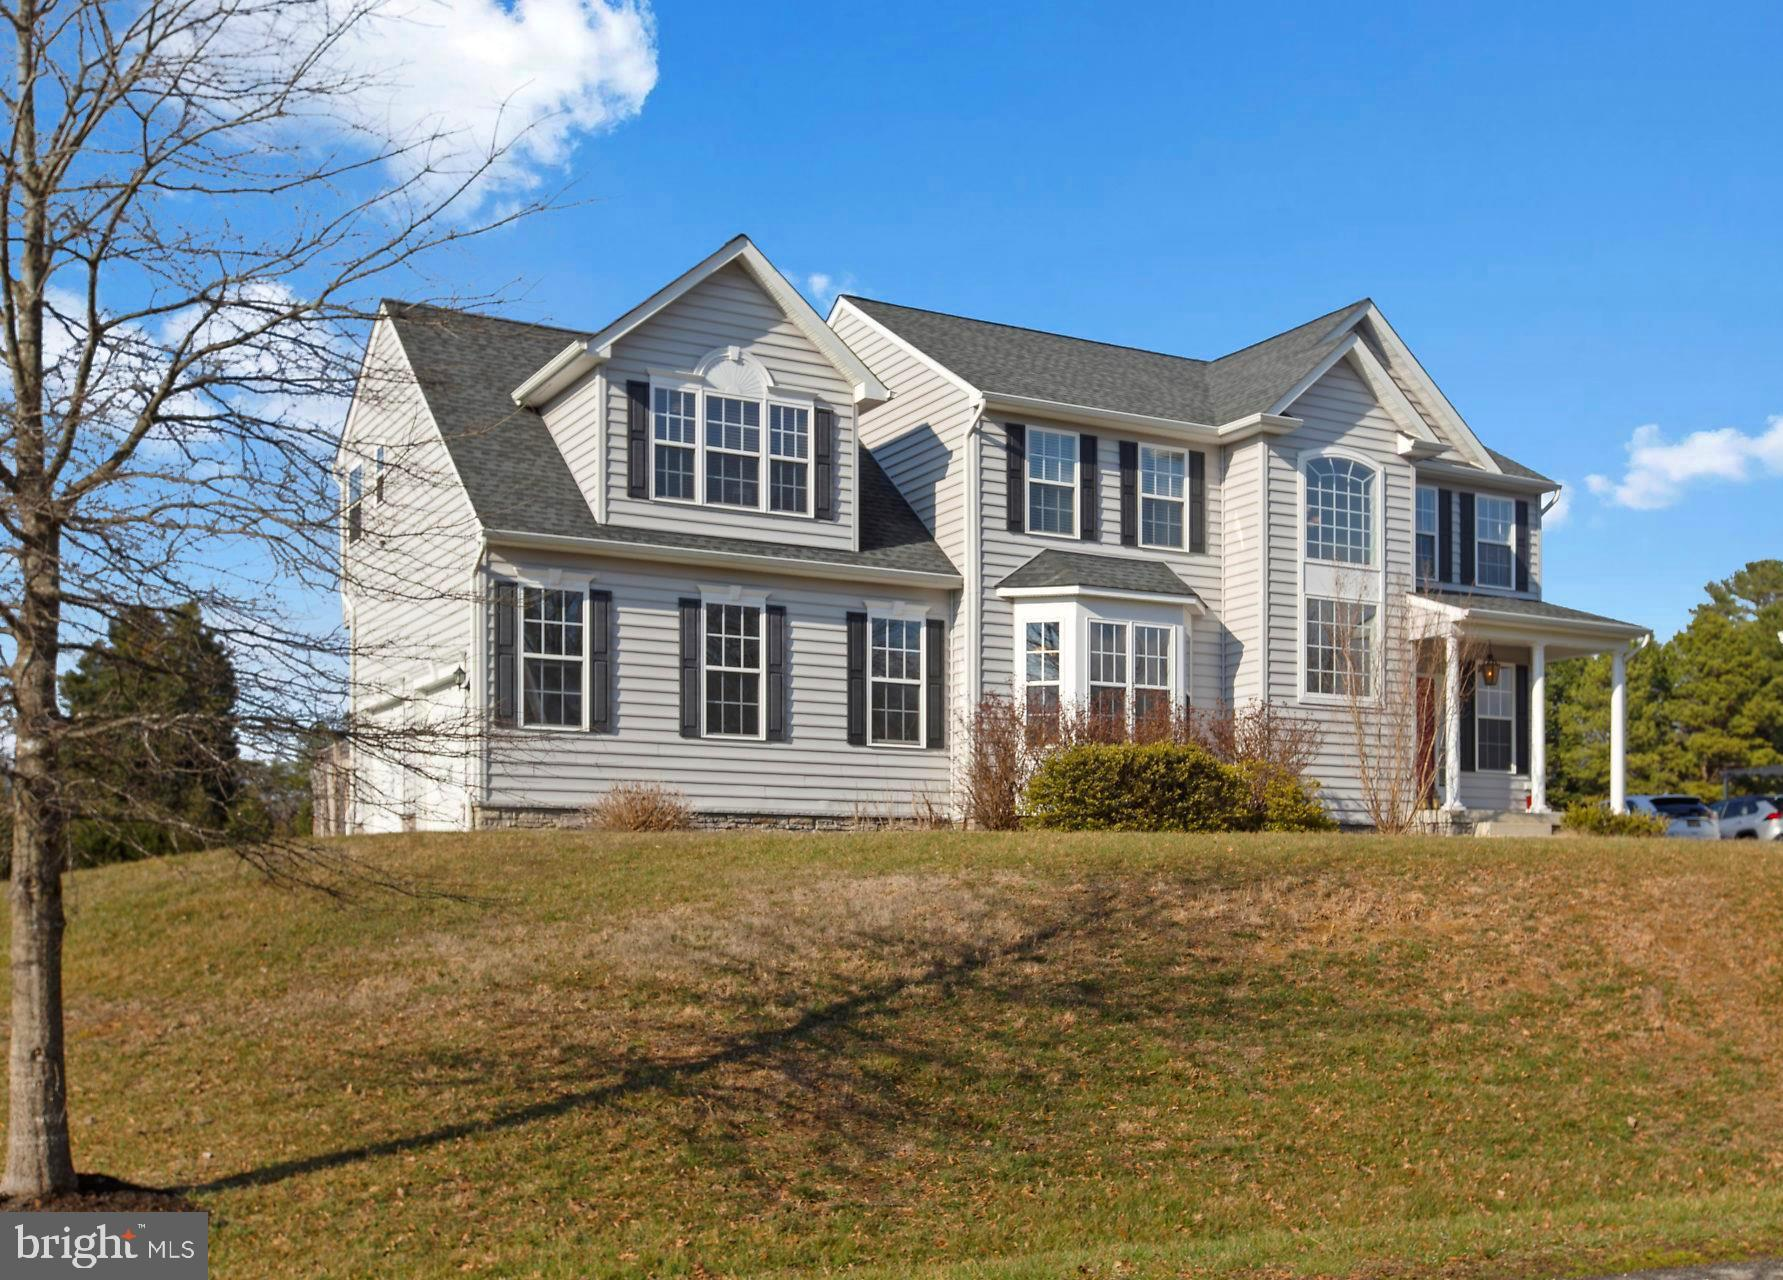 11212 RUBY COURT, LUSBY, MD 20657